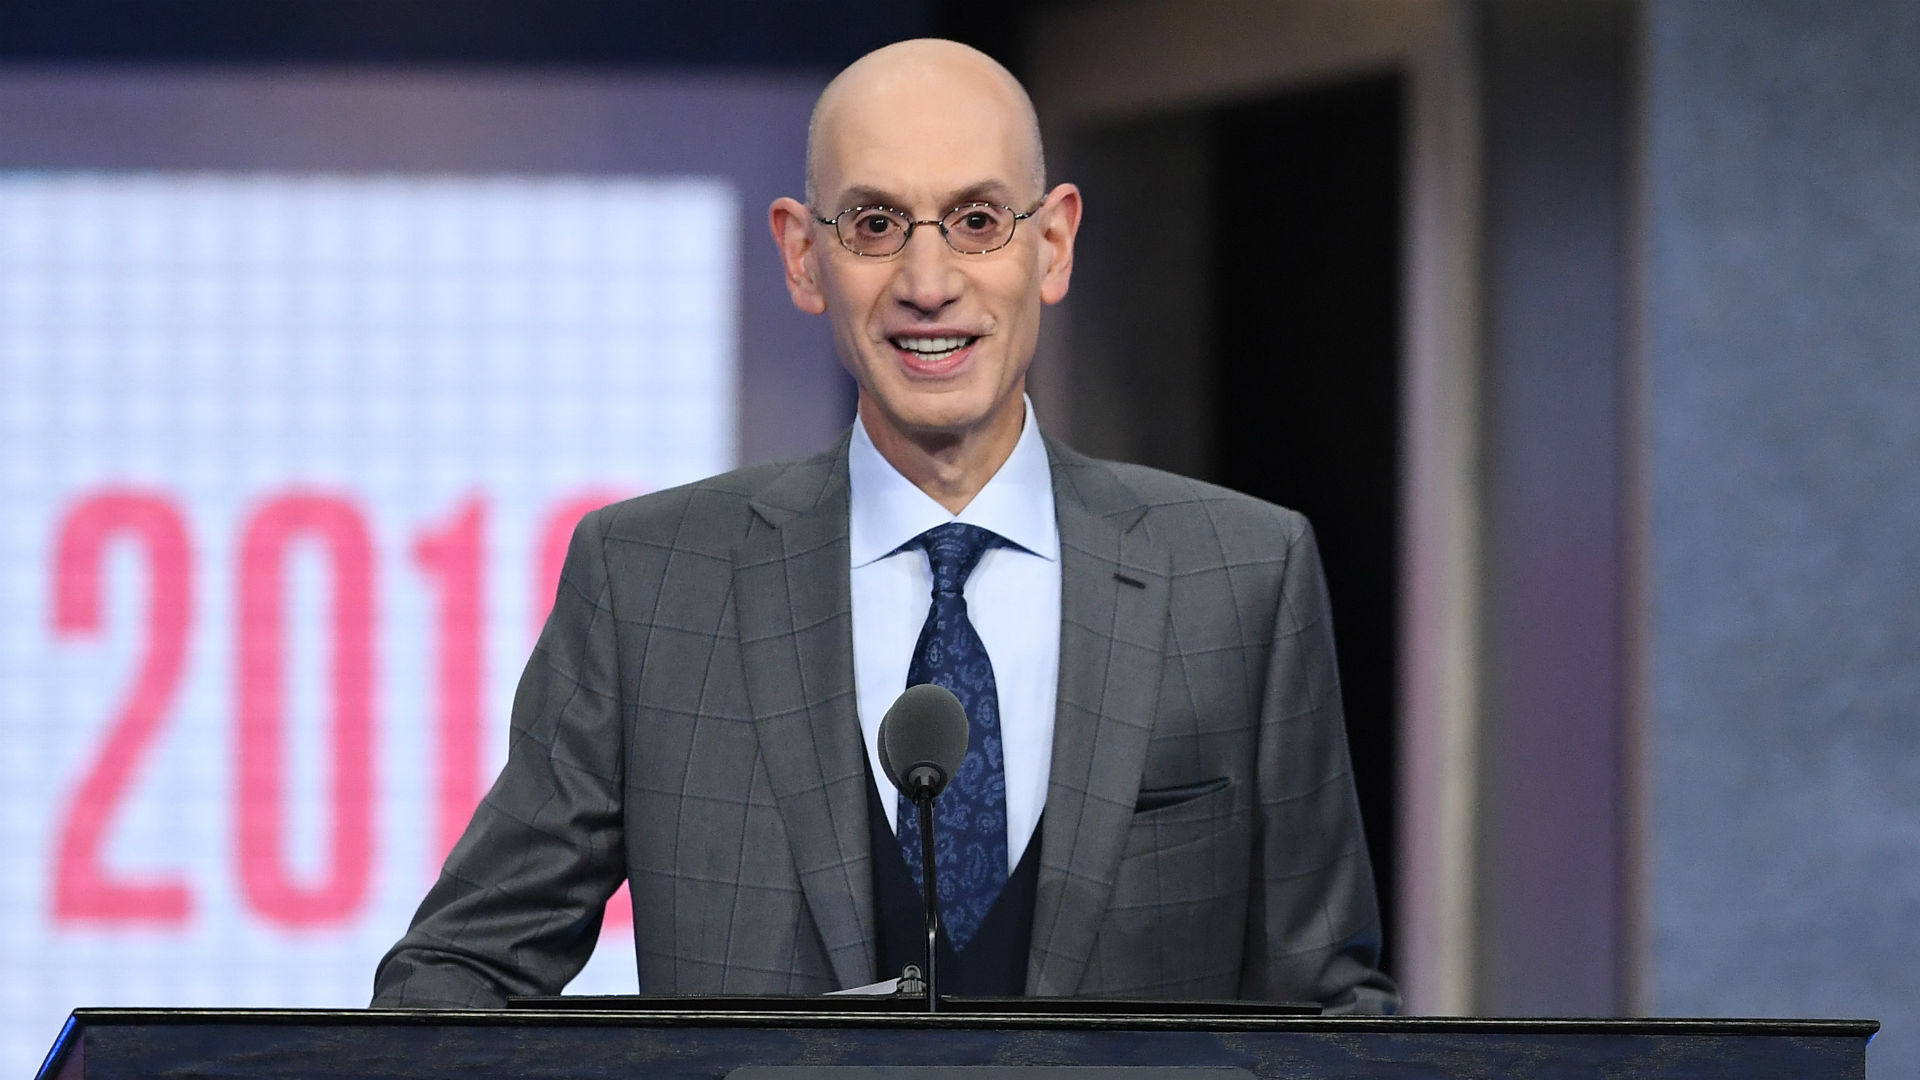 Live results of NBA draft lottery: Follow-up to the 2021 selection request for the 2021 Rockets, Pistons and other lottery teams